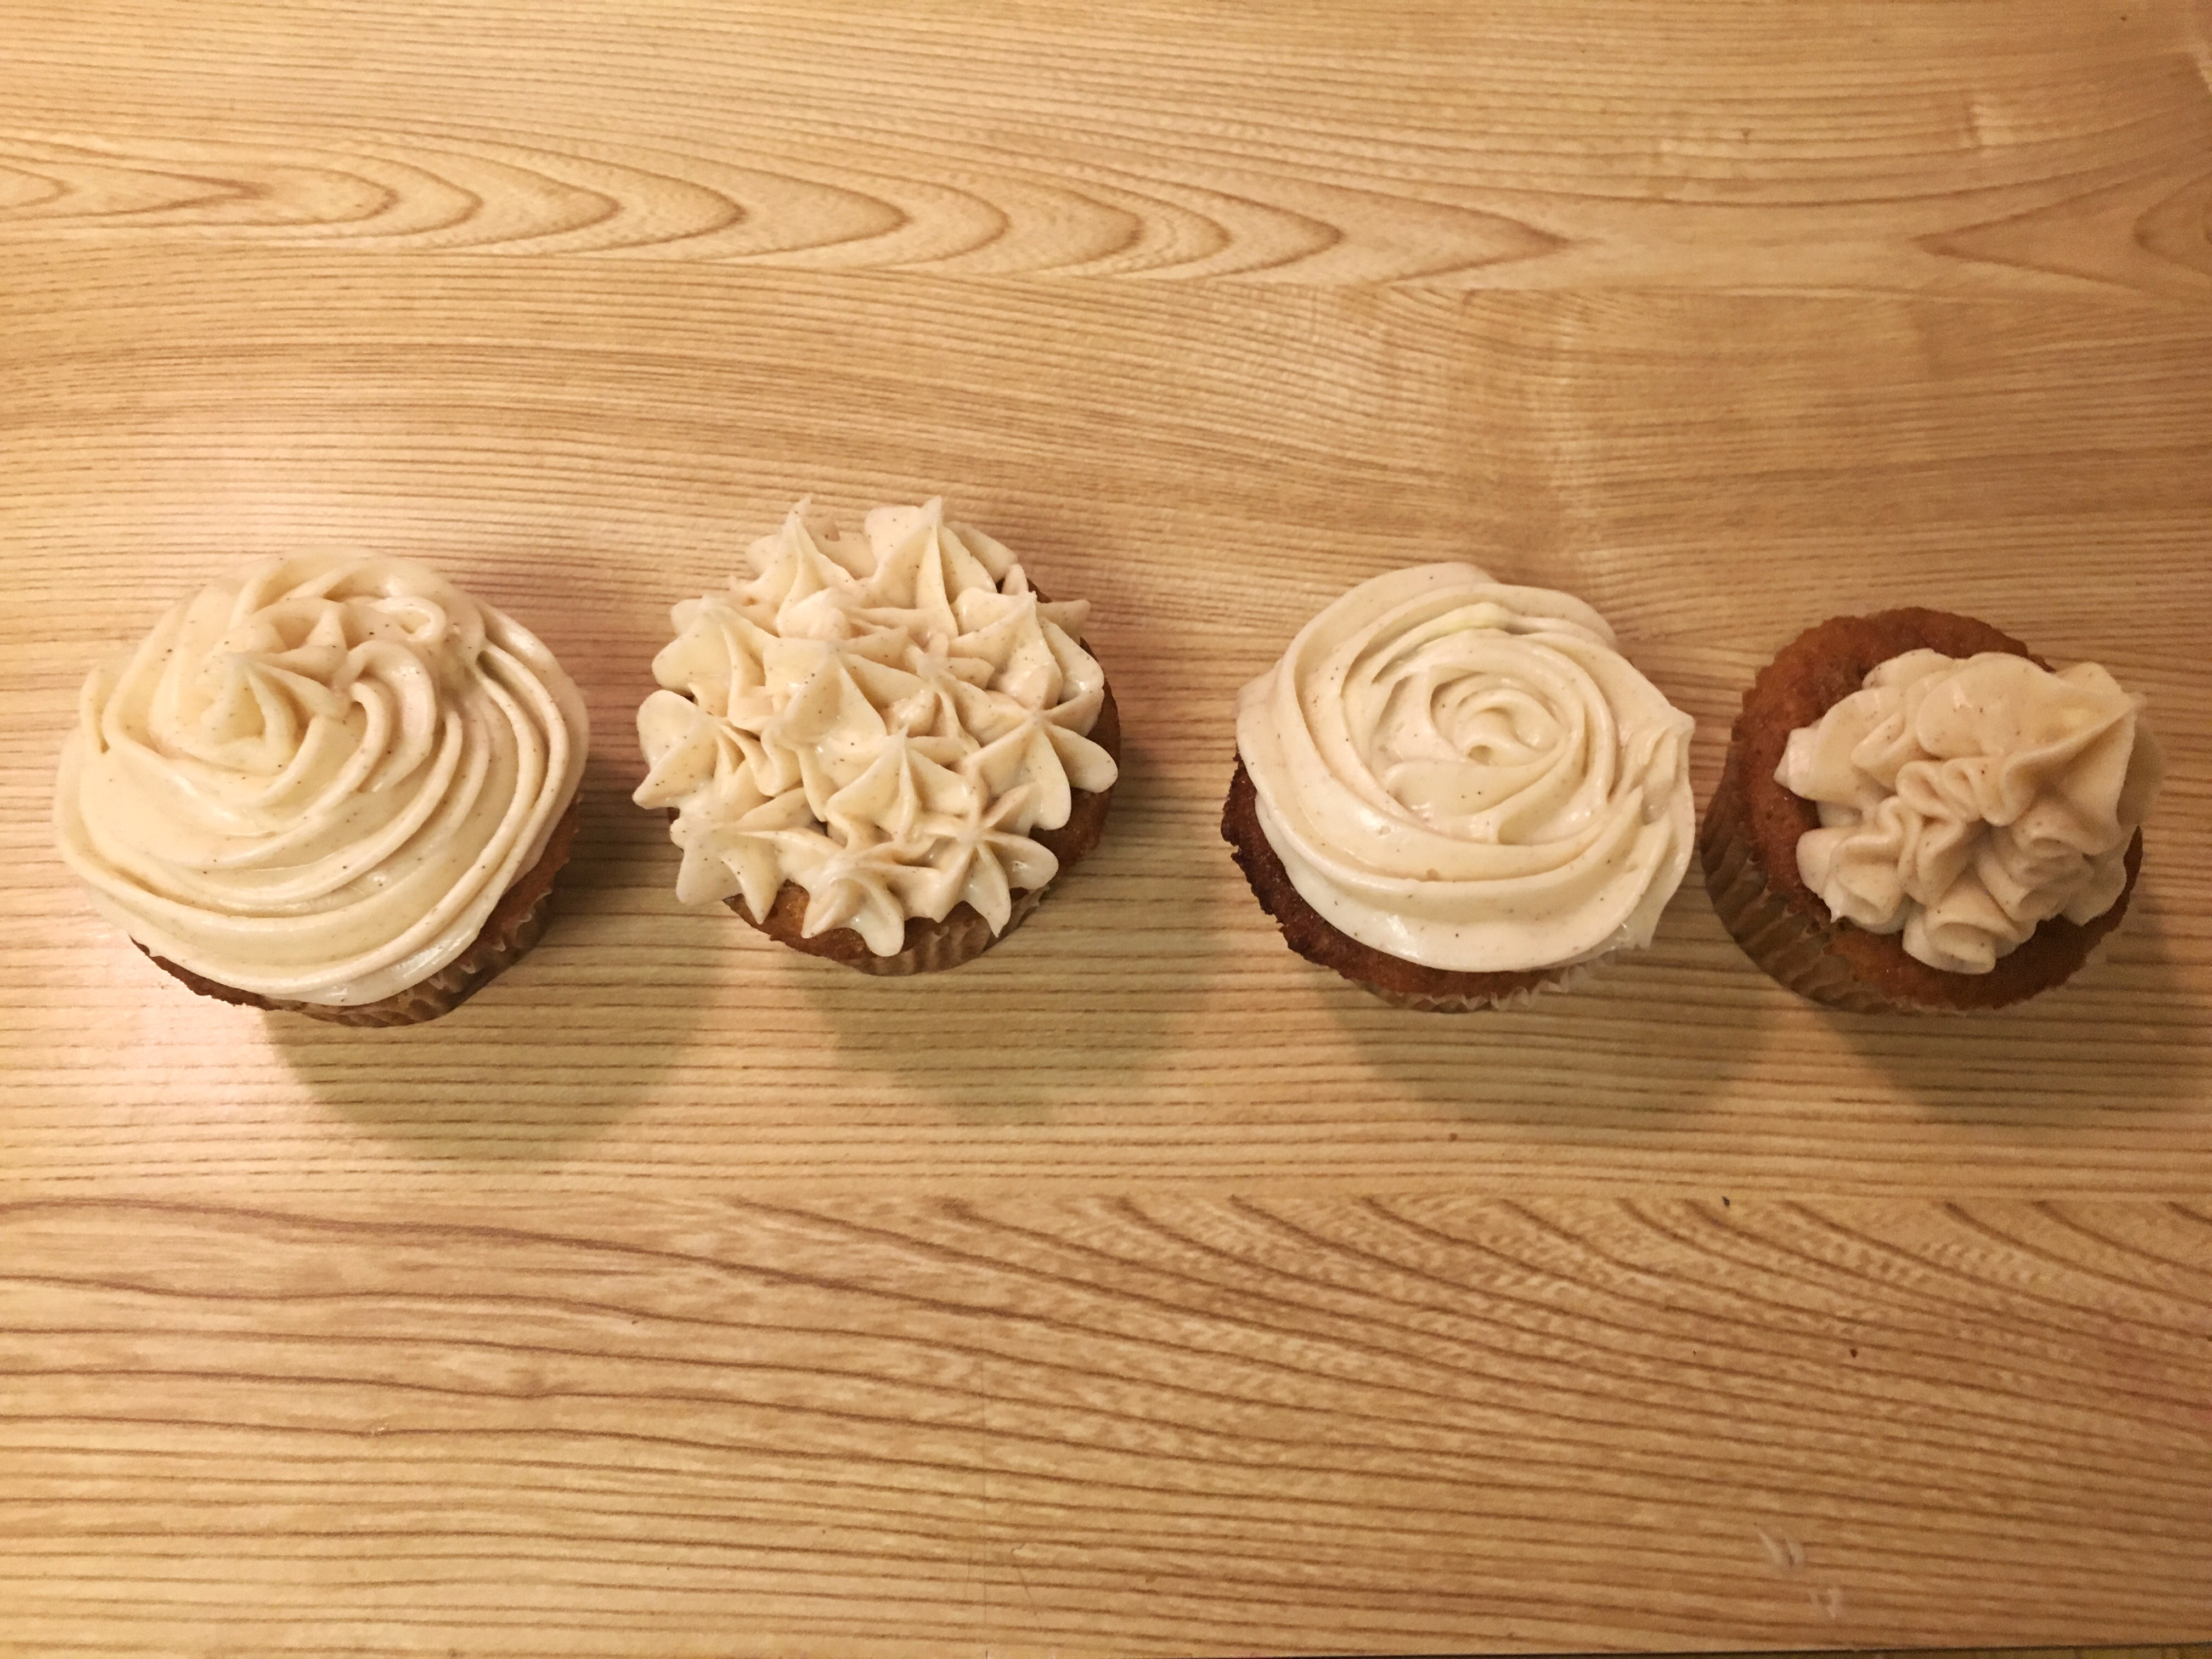 I Went Over Basic Cupcake Design Using The 1m Tip I Showed The Ladies How  To Use The 1m To Make 4 Basic Cupcake Designs: